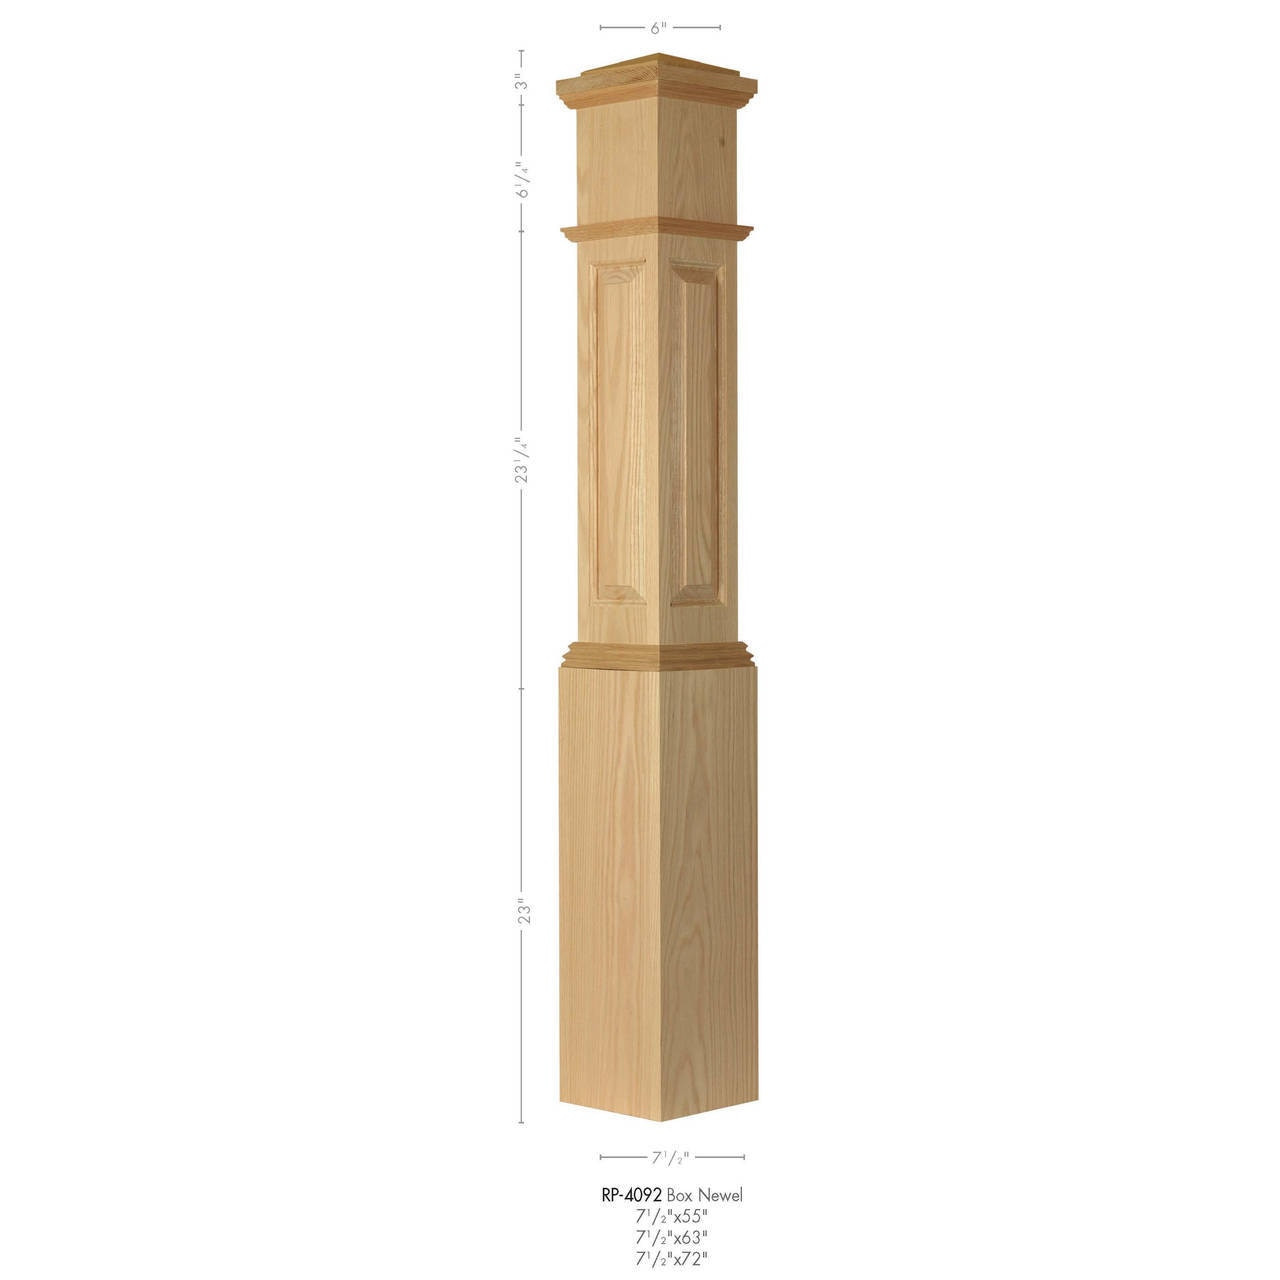 RP-4092 Primed Raised Panel Large Box Newel Post